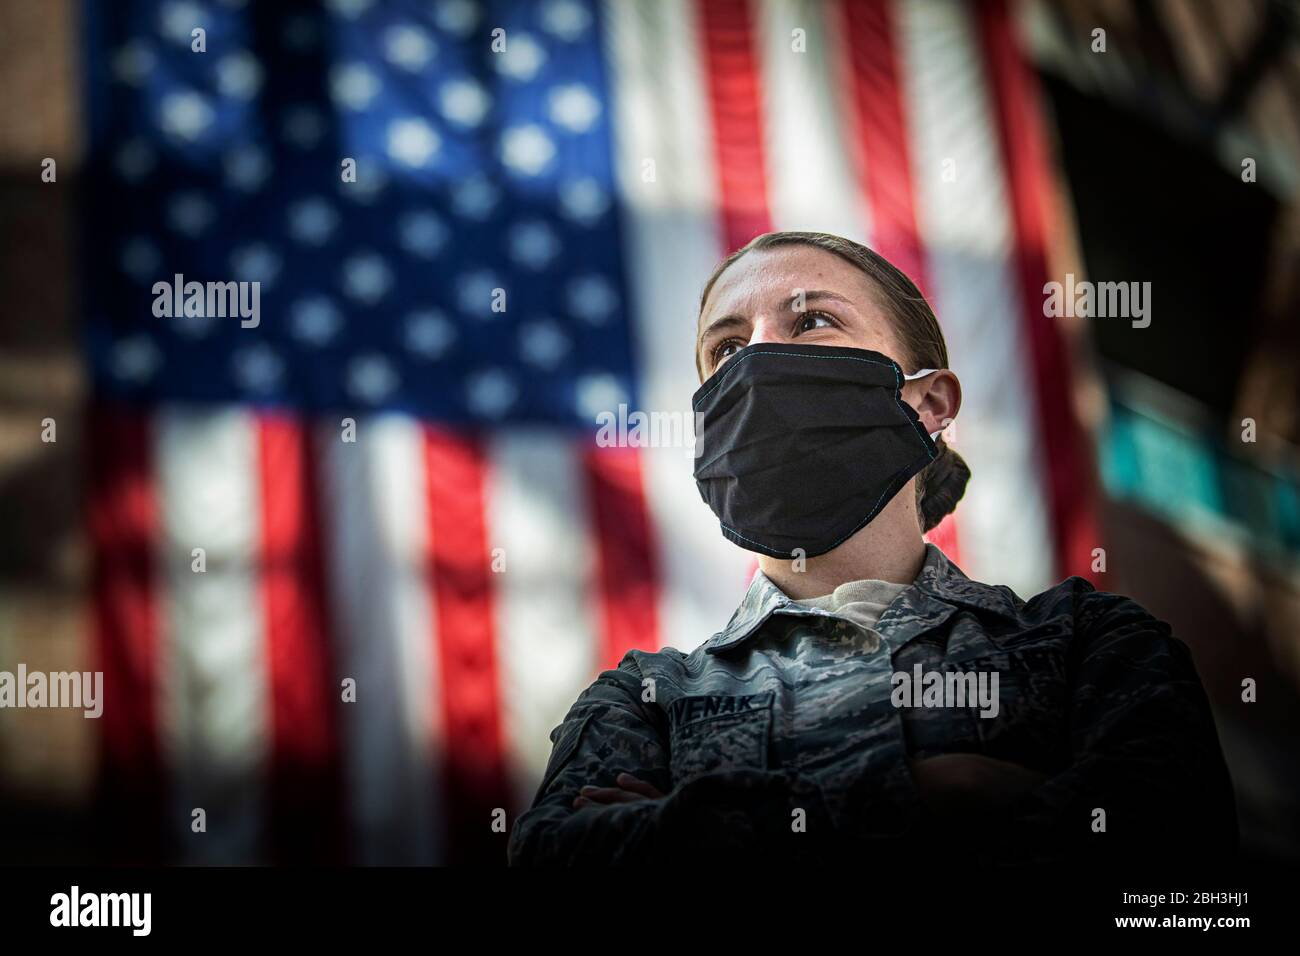 177th Fighter Wing High Resolution Stock Photography And Images Alamy